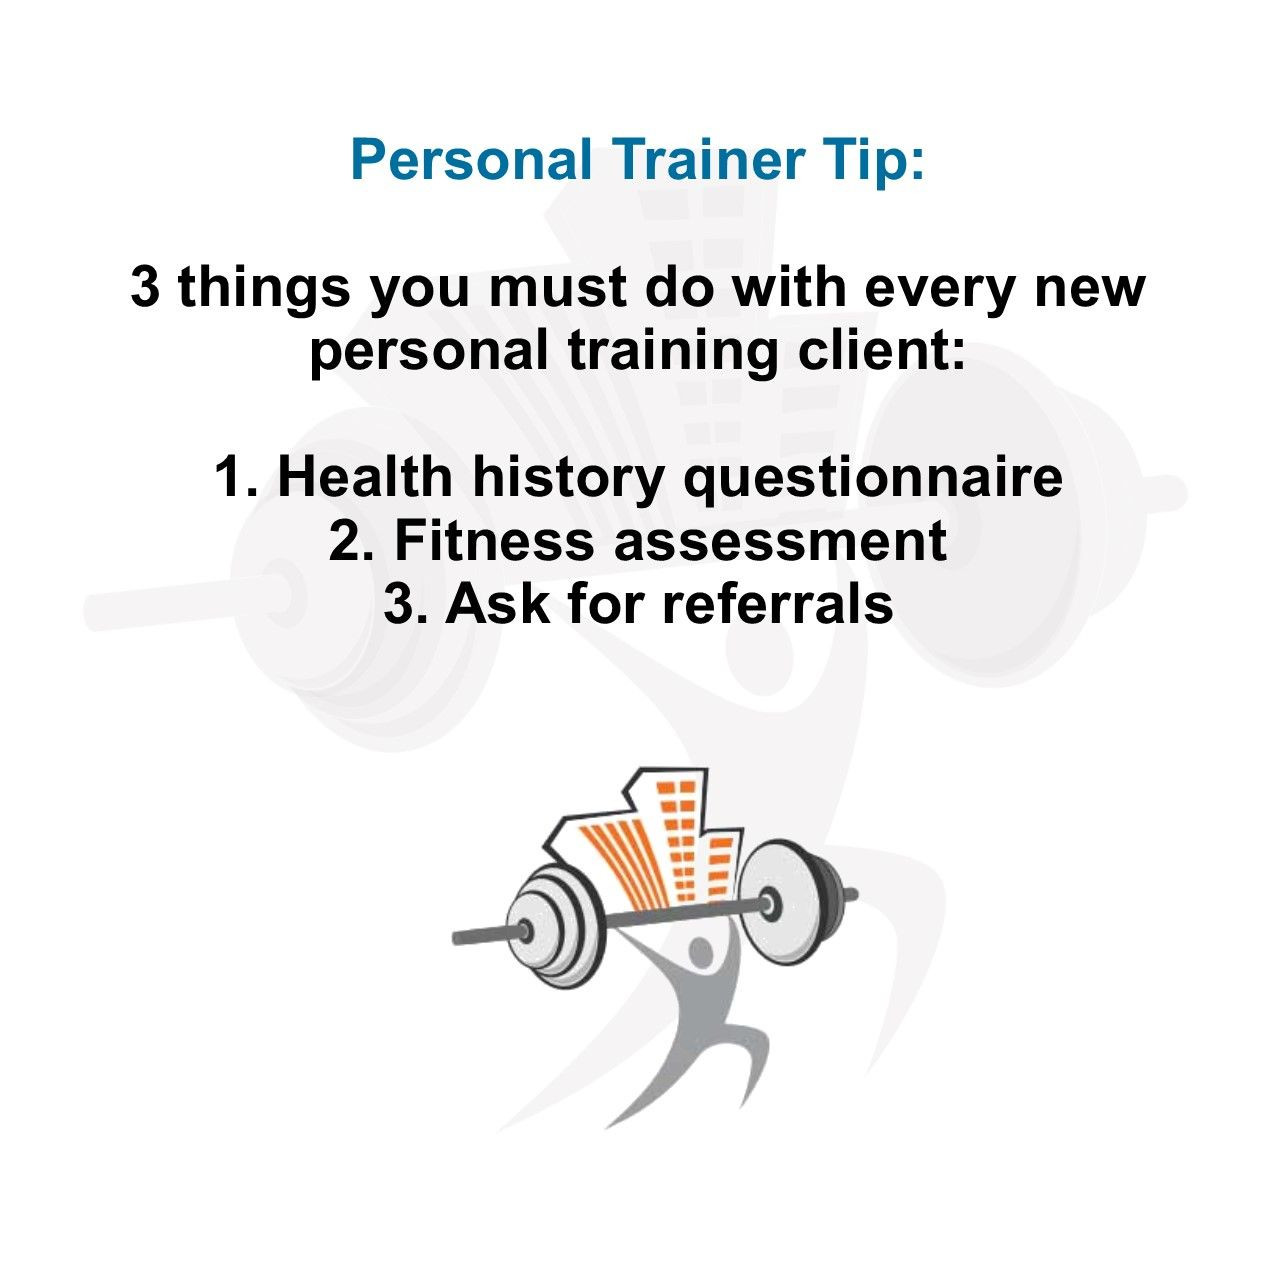 Personal trainer tip 3 things you must do with every new personal personal trainer tip 3 things you must do with every new personal training client xflitez Gallery